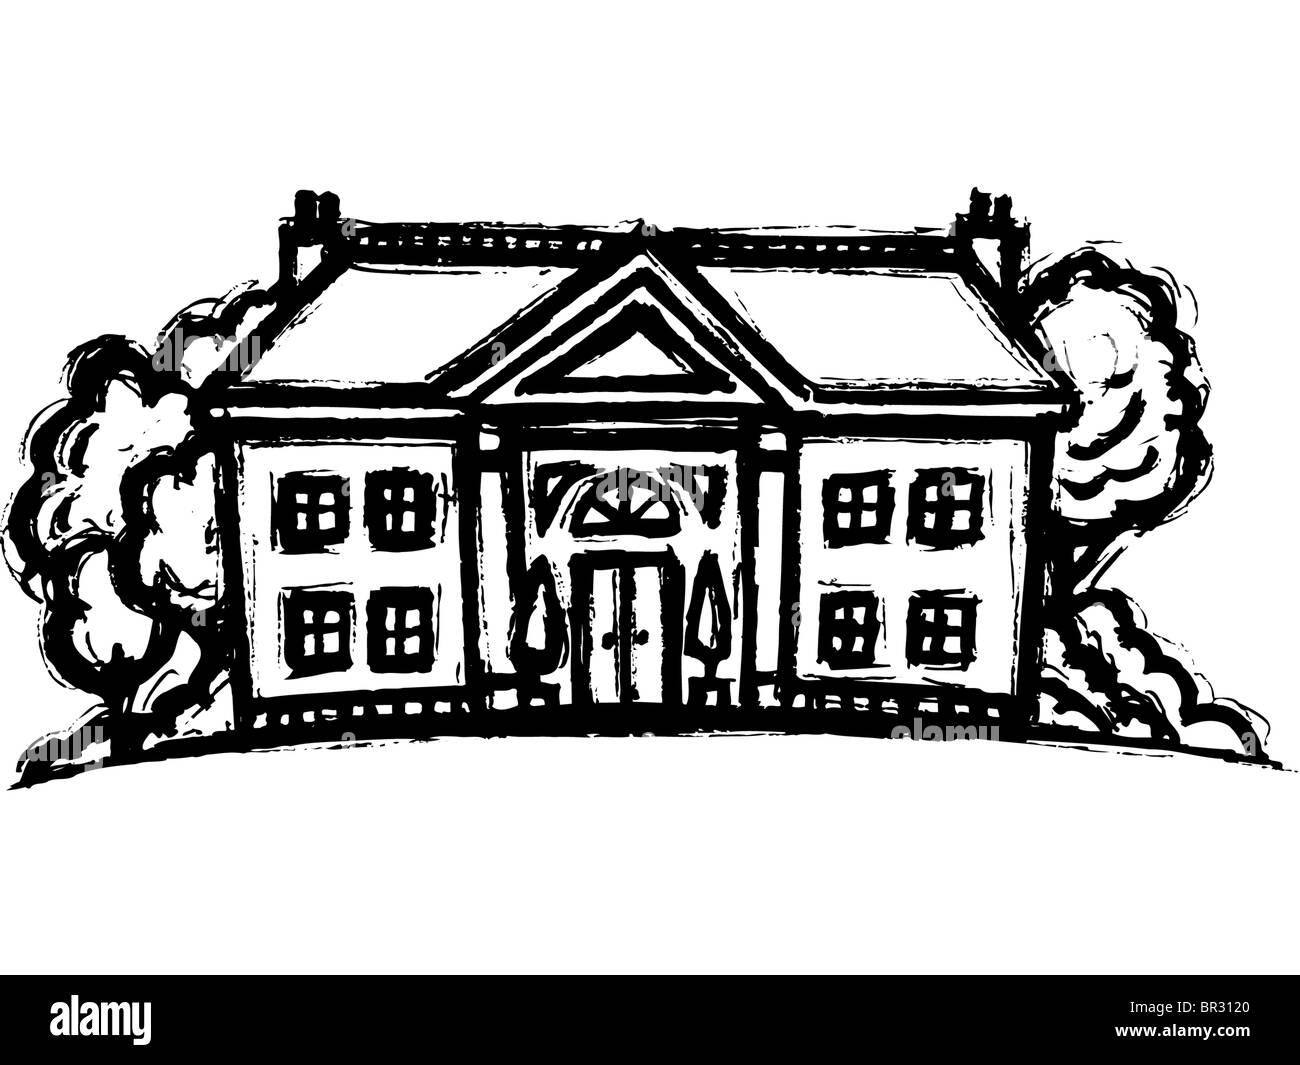 A Black And White Drawing Of Mansion